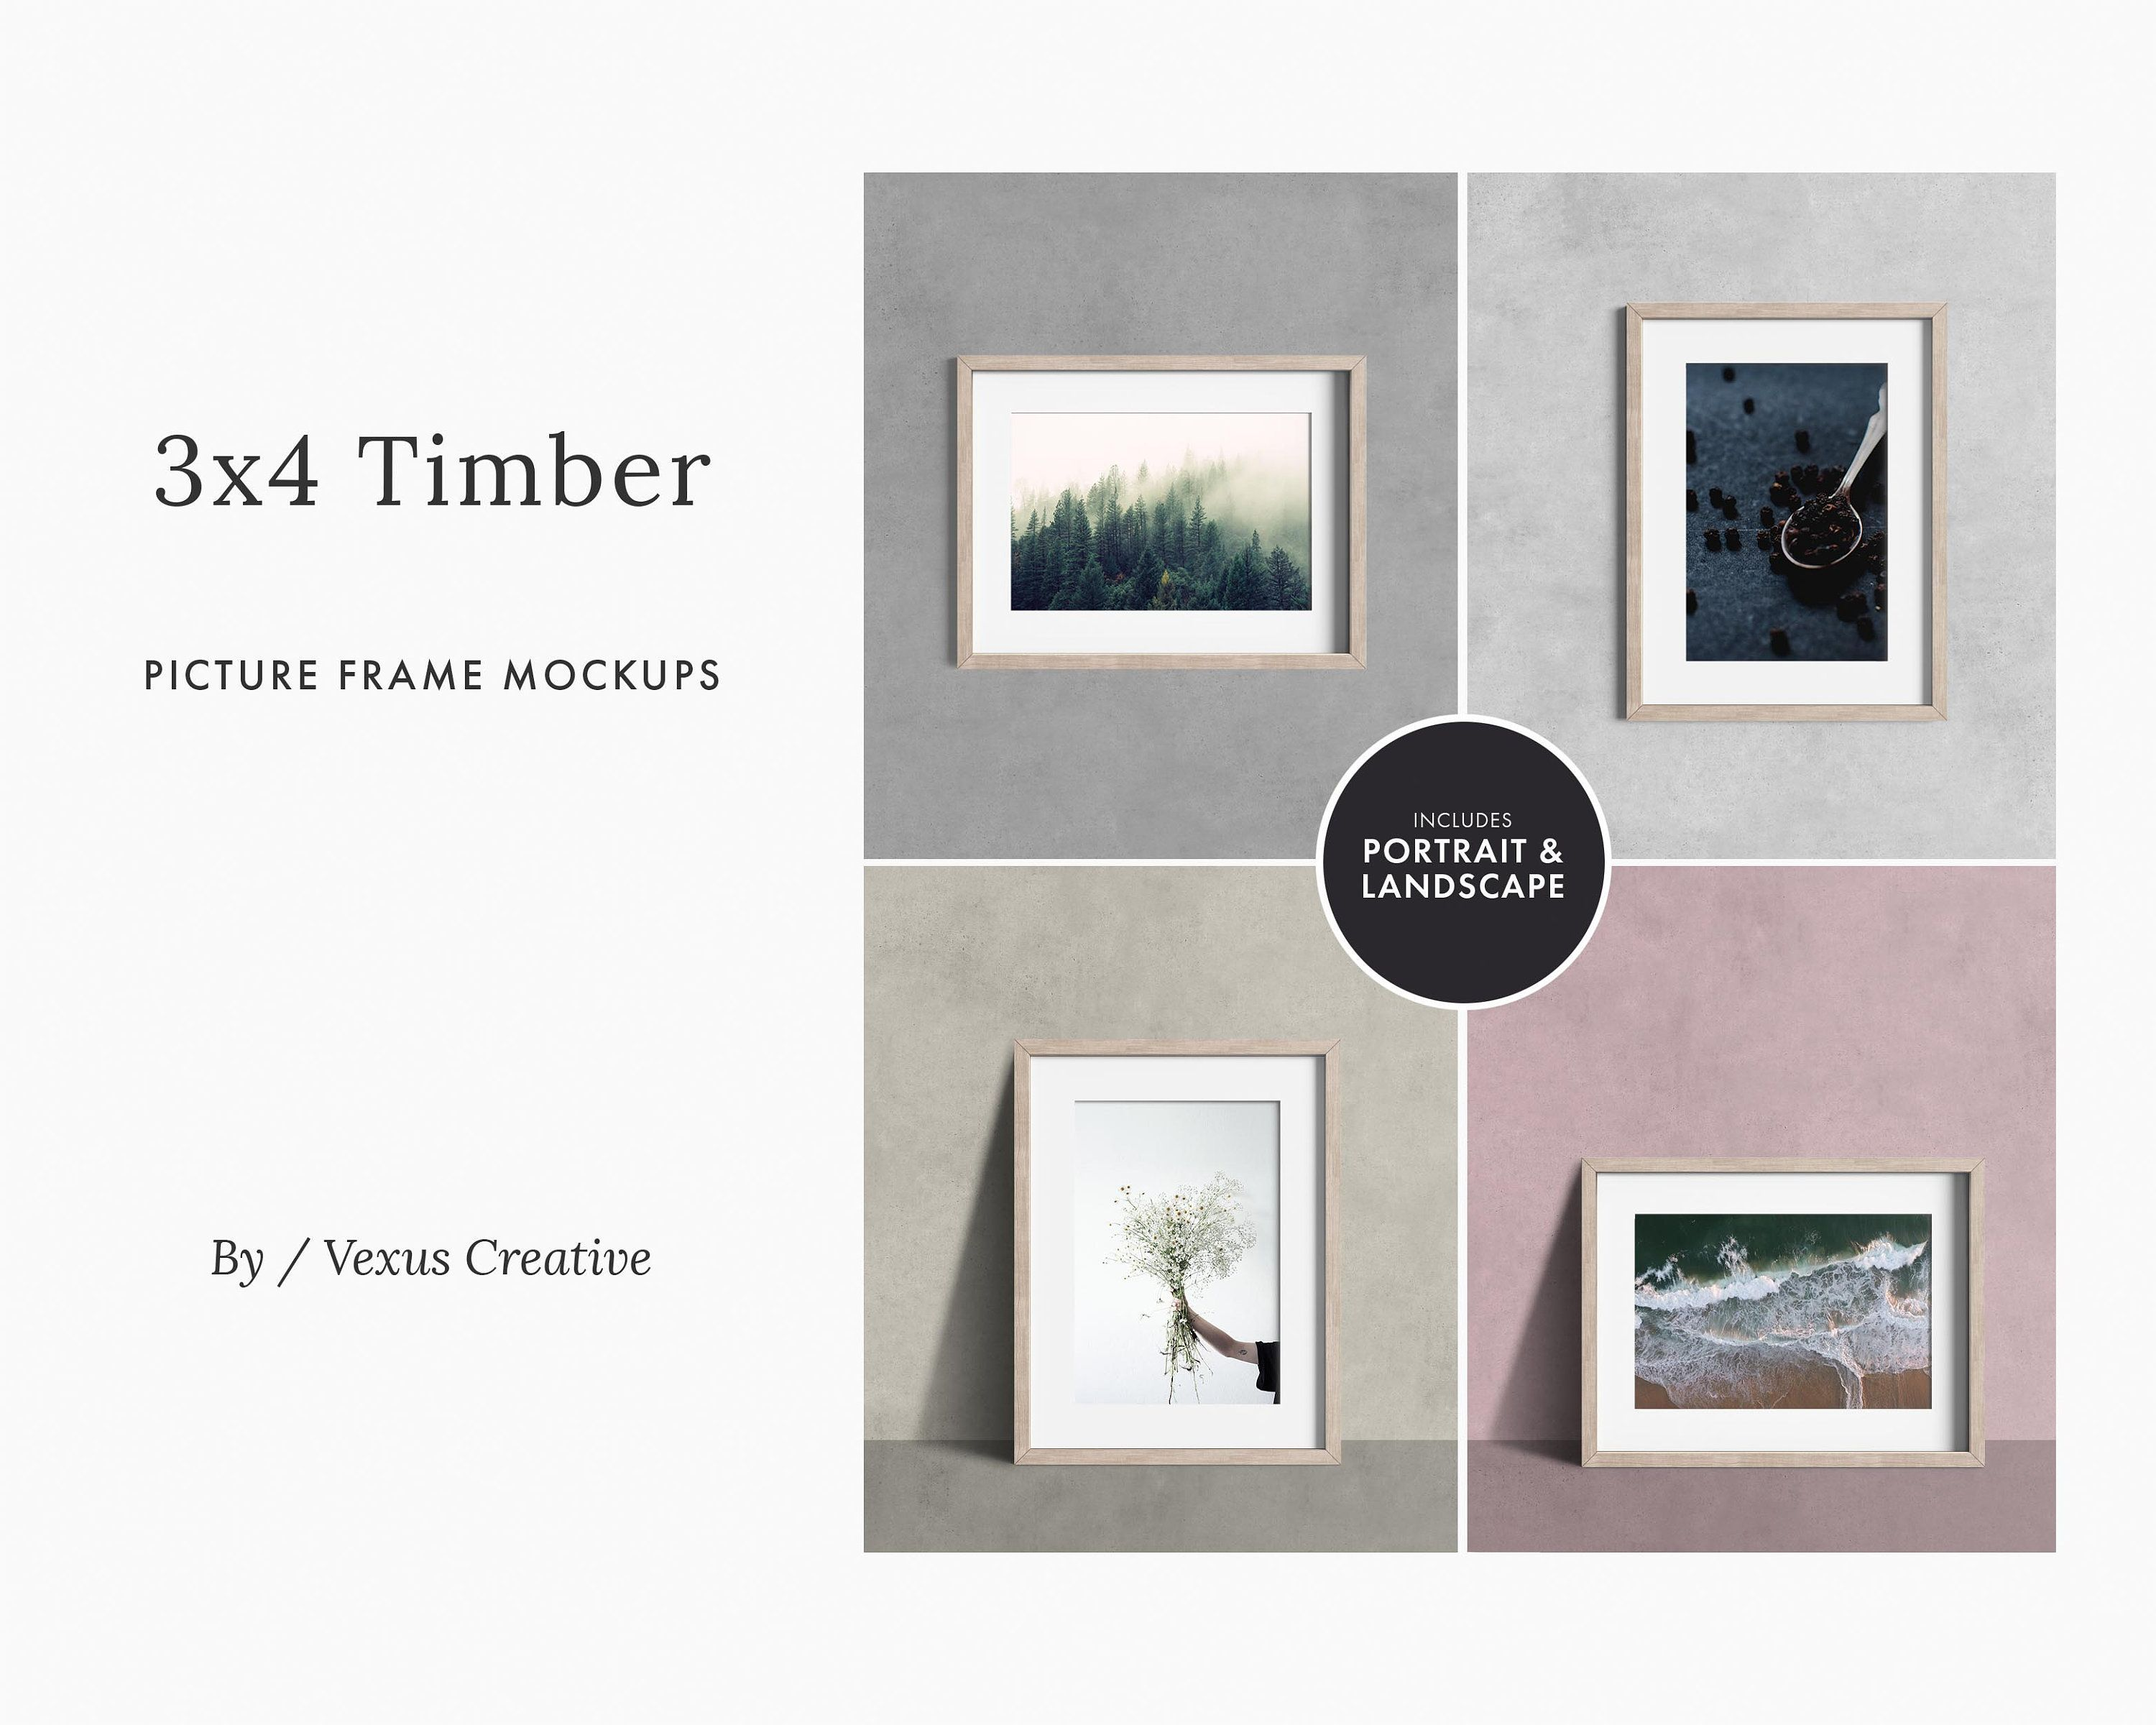 20008 3x4 Wood Frame For Photo Timber Picture Frames Wood Photo Frames Wood Frame For Poster 34 Frame For Photo In 2020 Wood Photo Frame Photo On Wood Photo Frame Wall